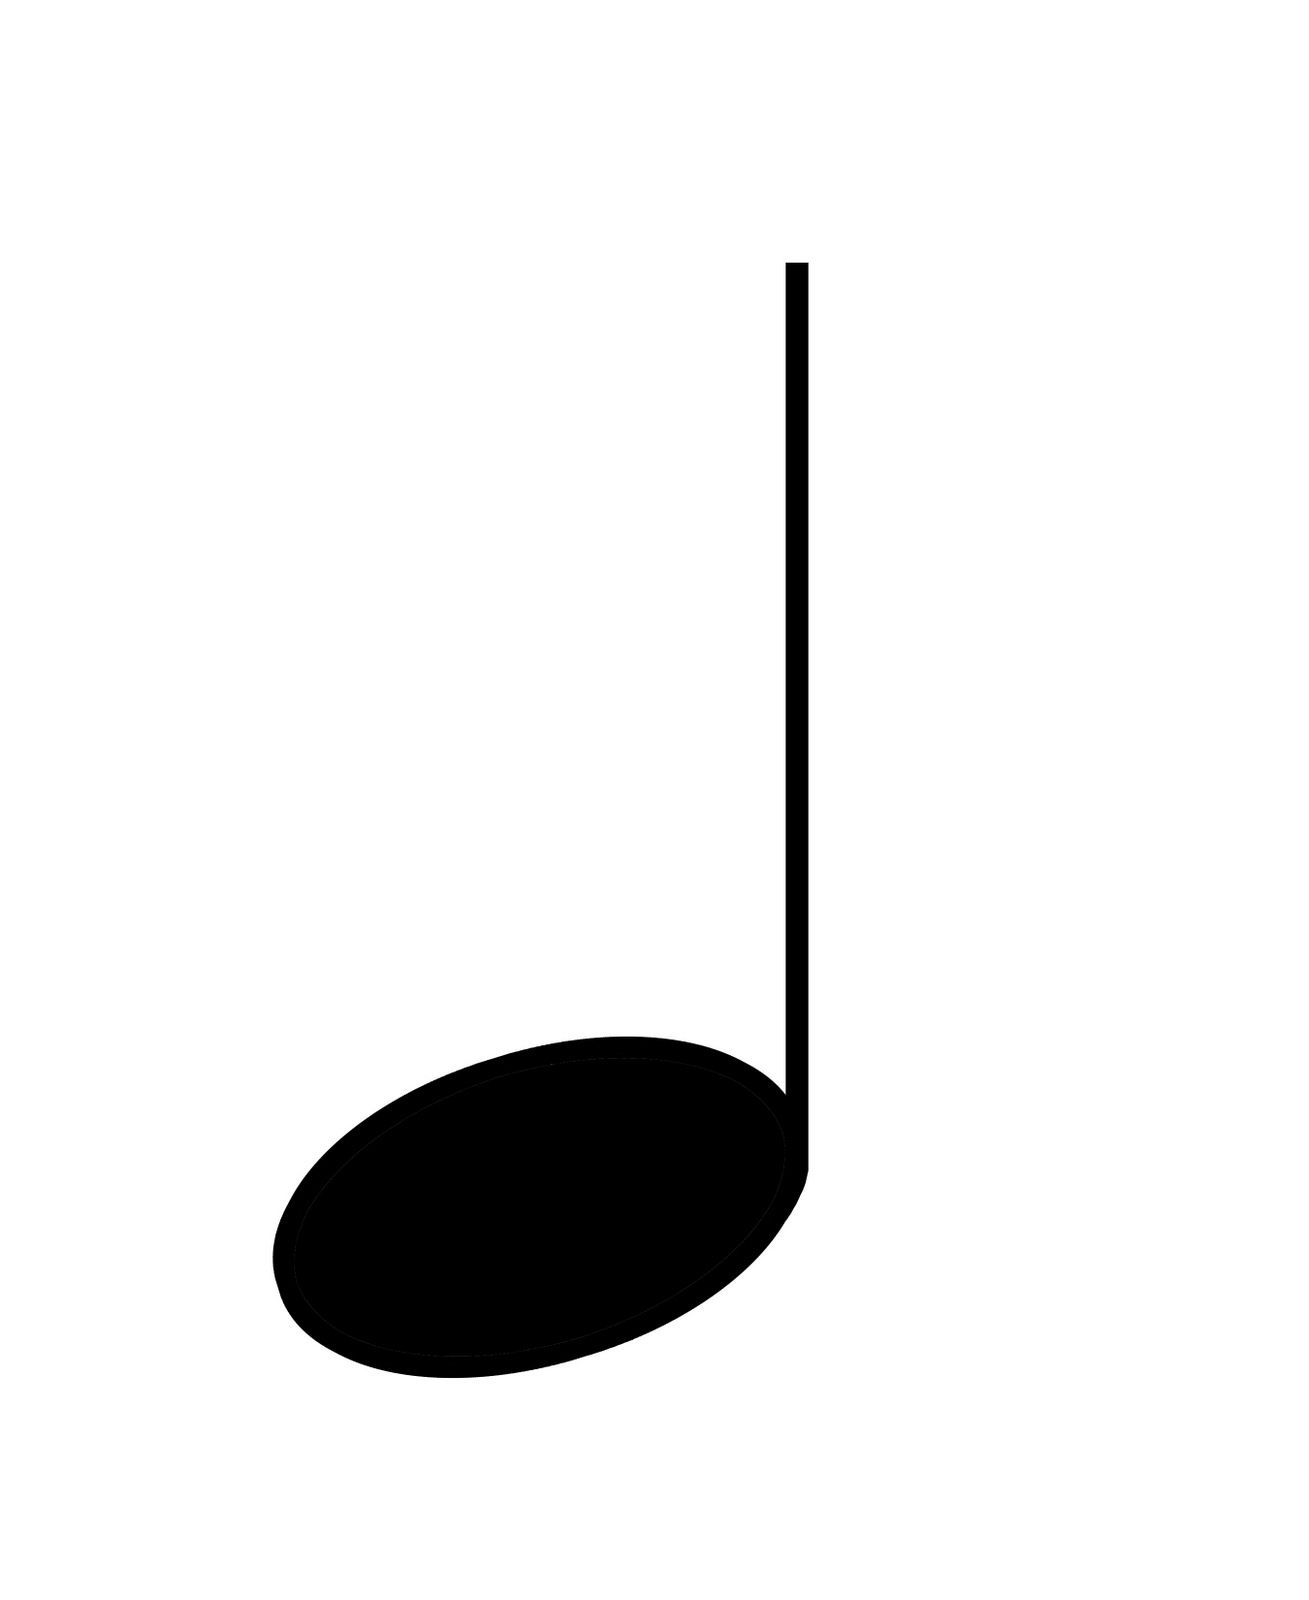 Quarter Note Clip Art